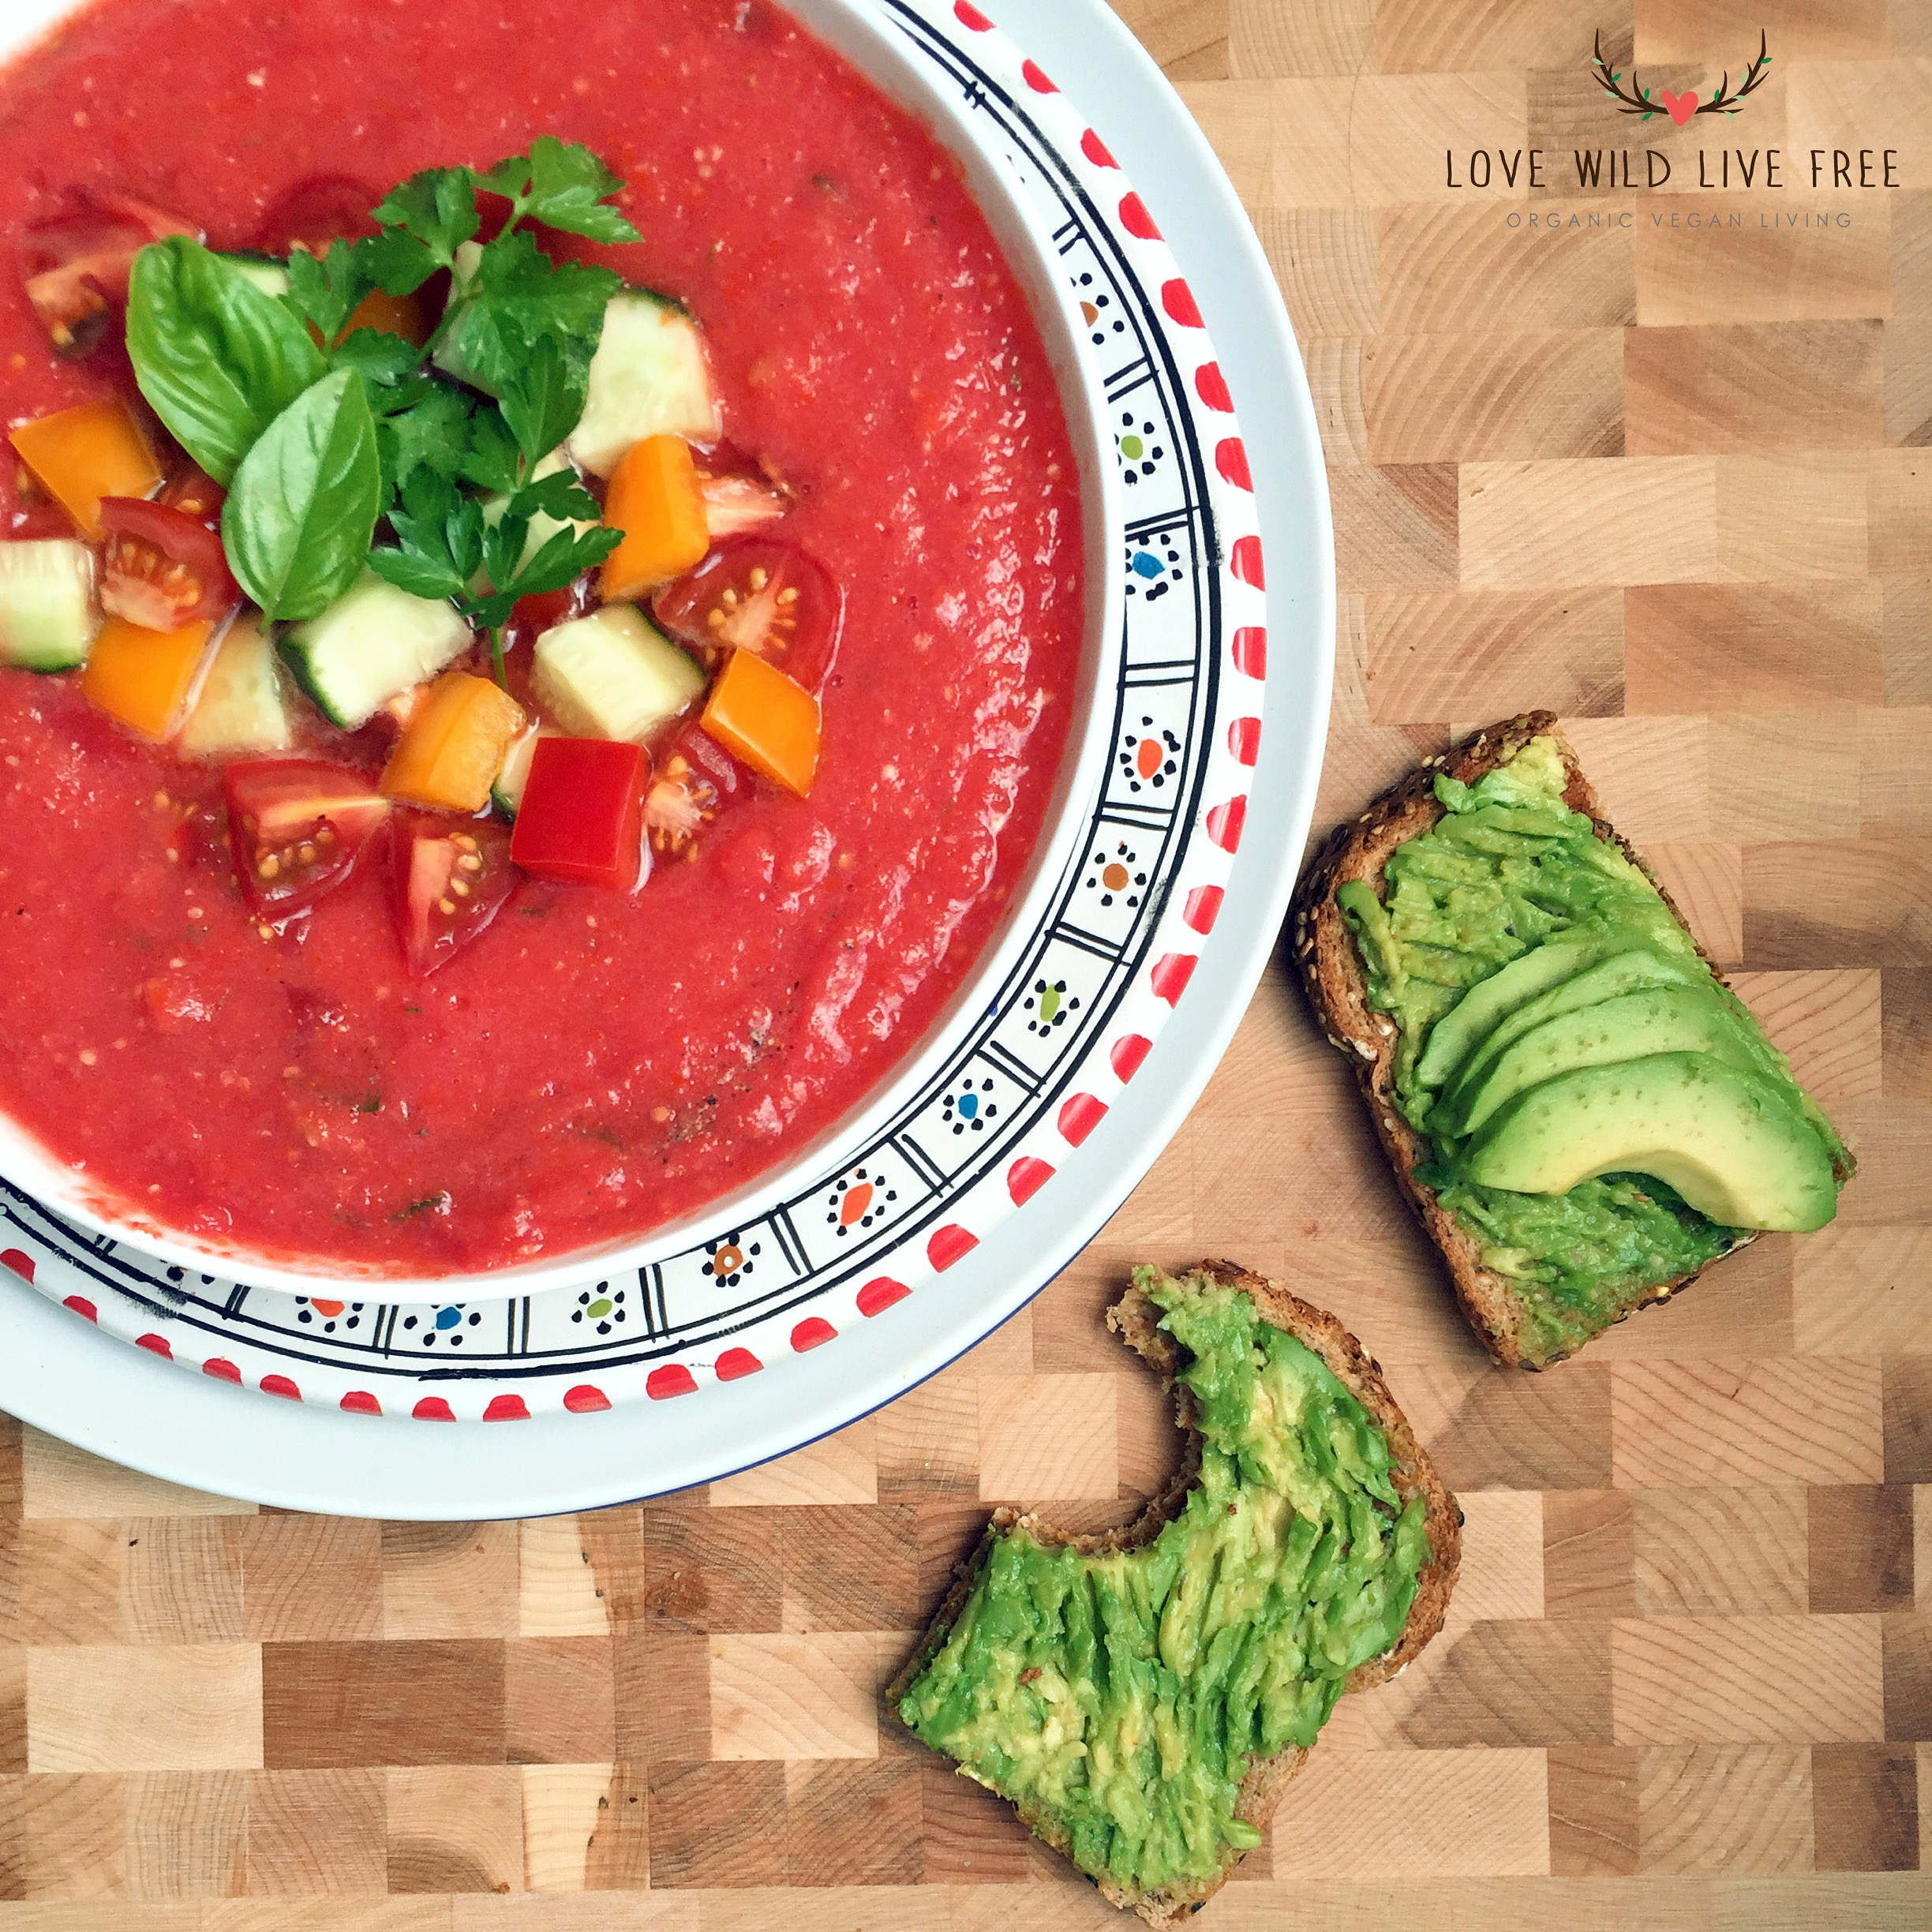 This raw gazpacho is simple to make, refreshing and delicious. This soup travels well, and would be perfect to make ahead of time for lunch on the go, or a picnic in the park. As long as you have an ice pack or refrigeration available you are all set!